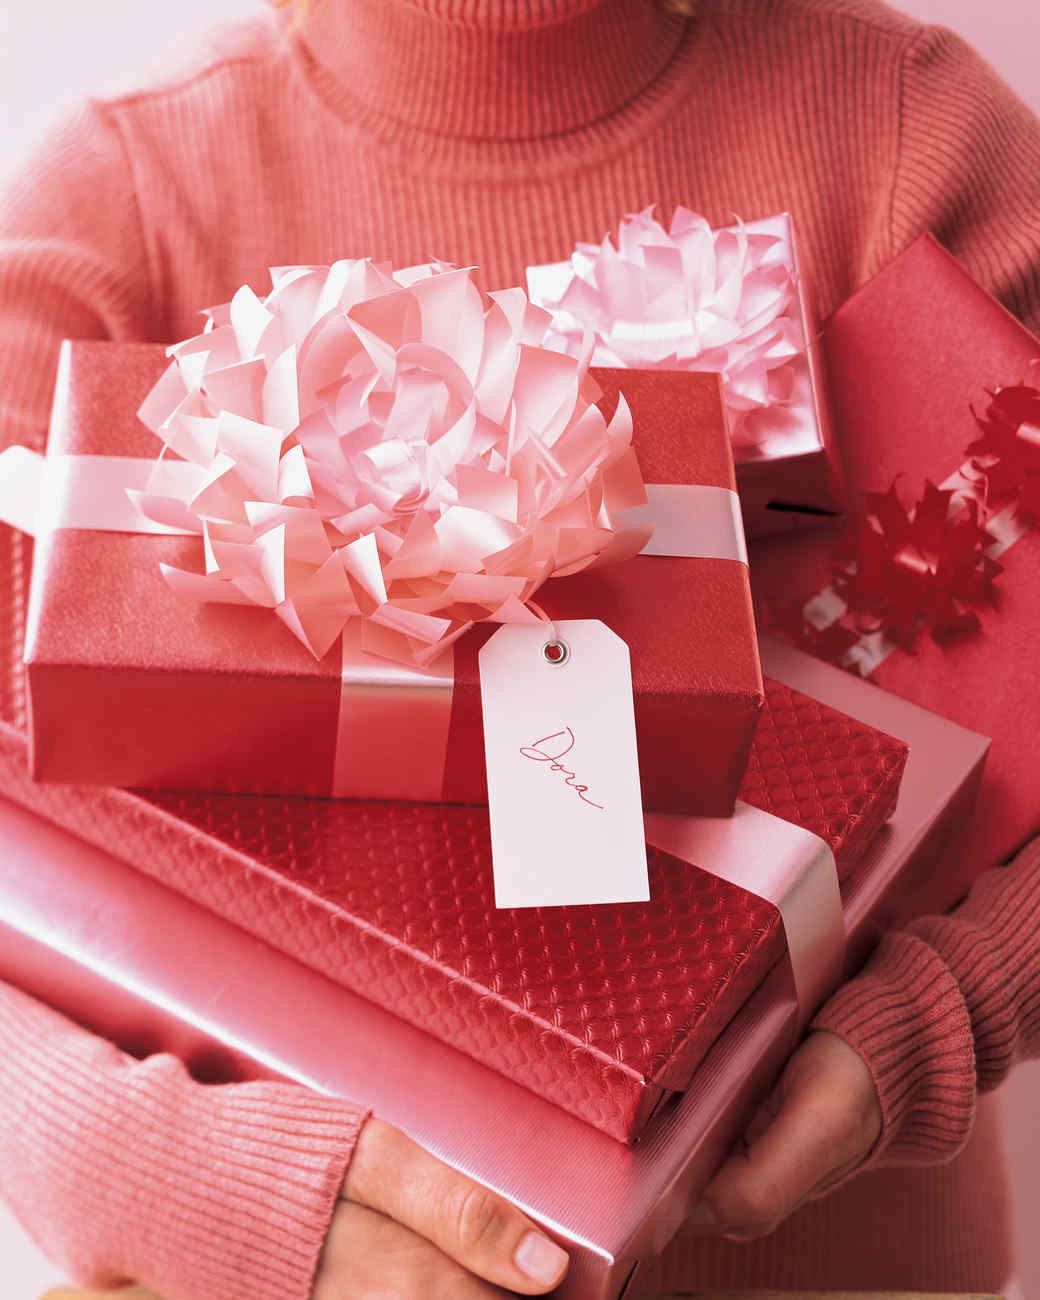 Best ideas about Gift Wrapping Ideas Ribbon . Save or Pin Bows Ribbons and Gift Toppers Now.